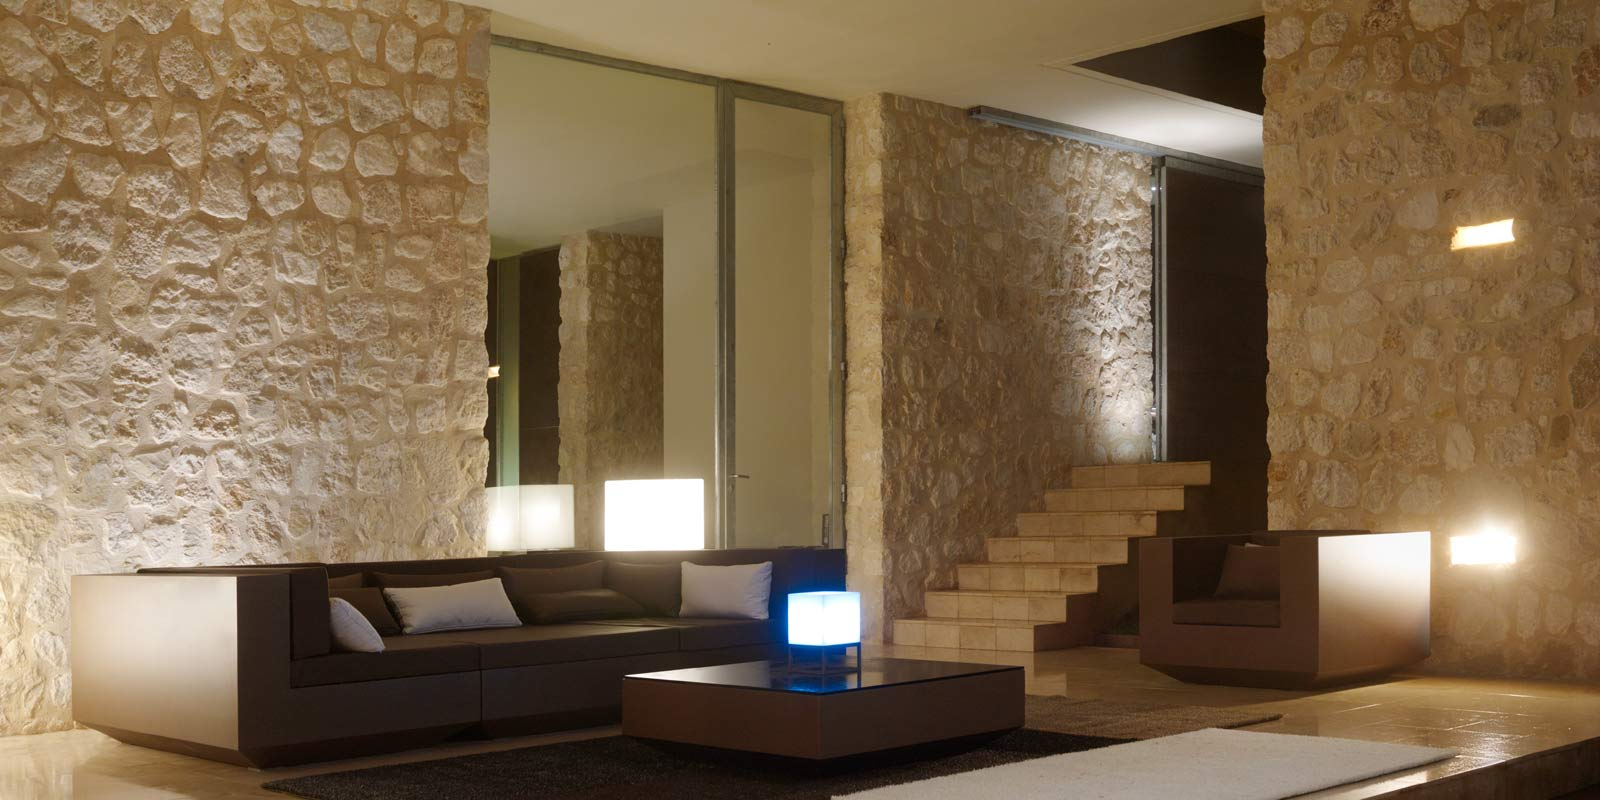 Vela lampe cub by ram n esteve lamparas vondom products for Beauty spa tableview